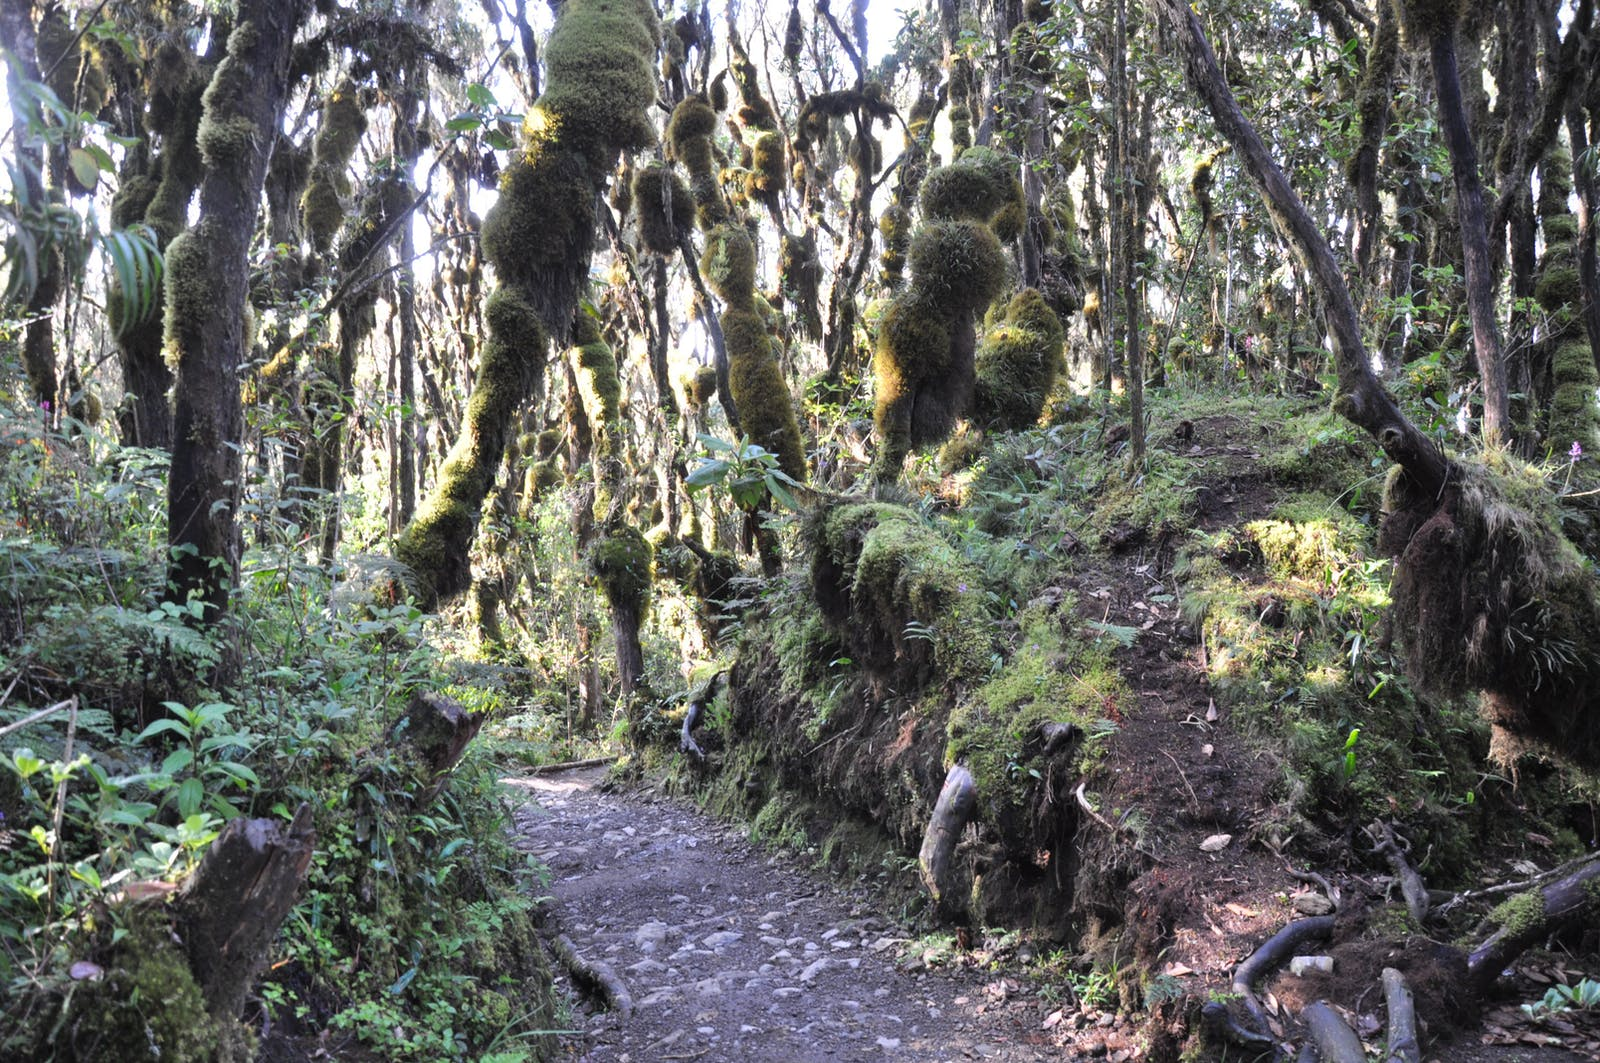 East African Montane Forests